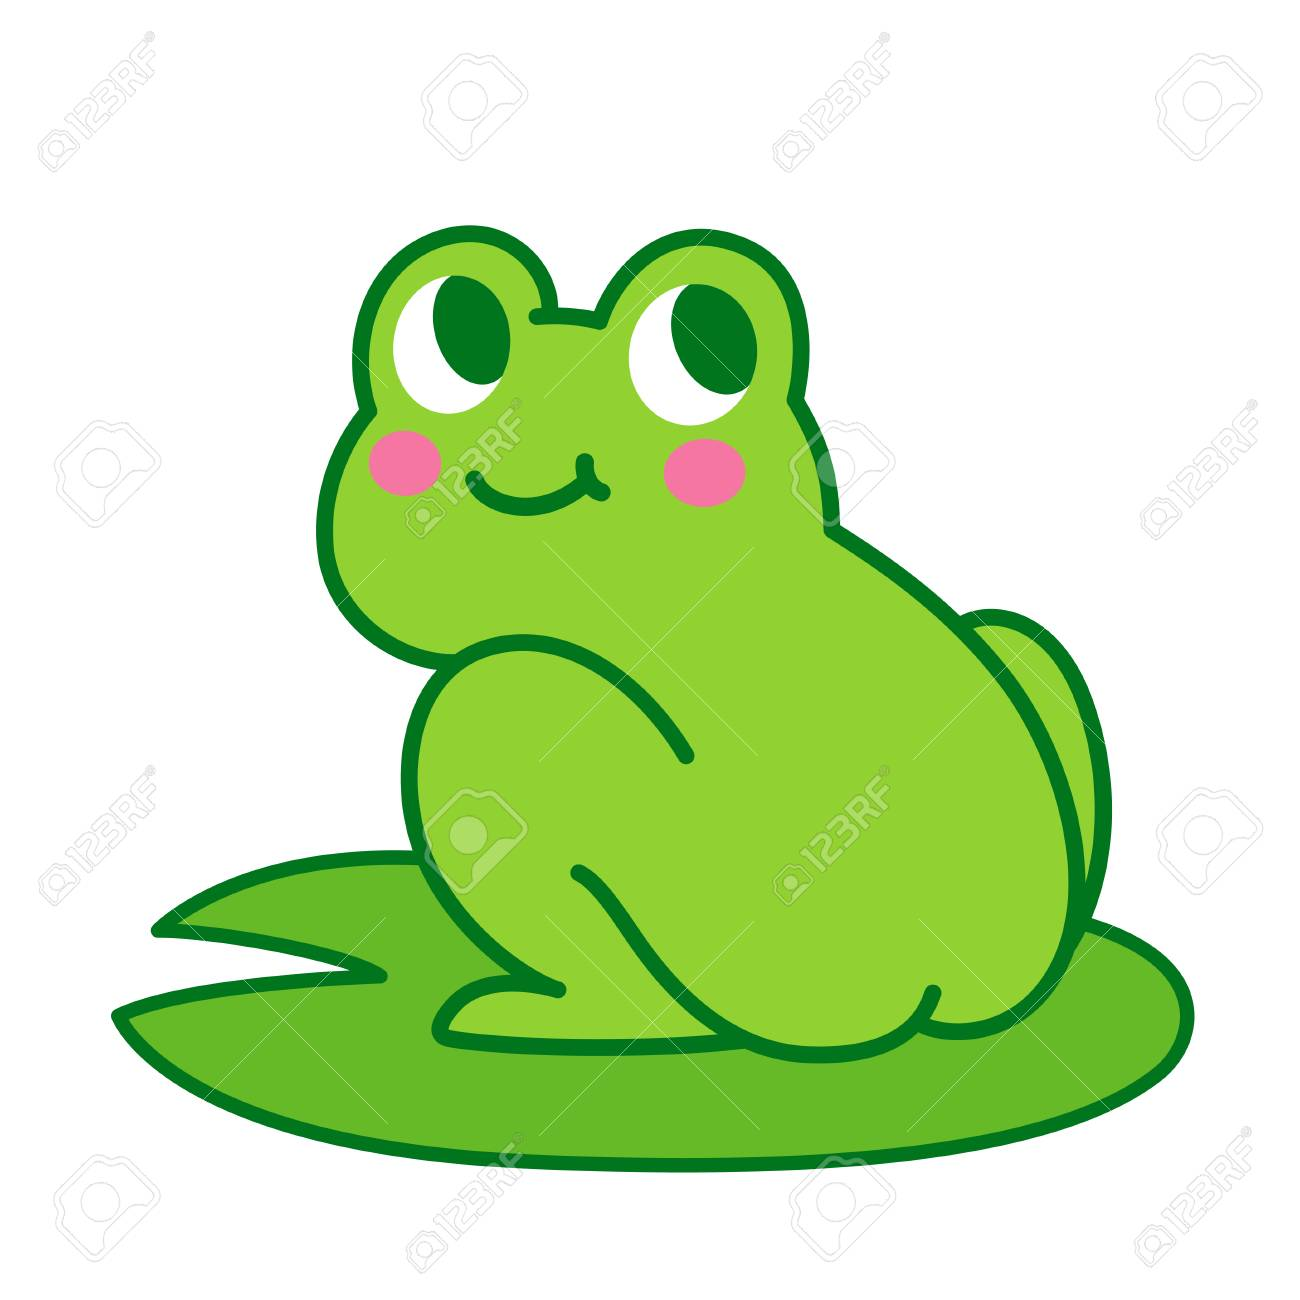 cute cartoon frog butt drawing funny illustration for children